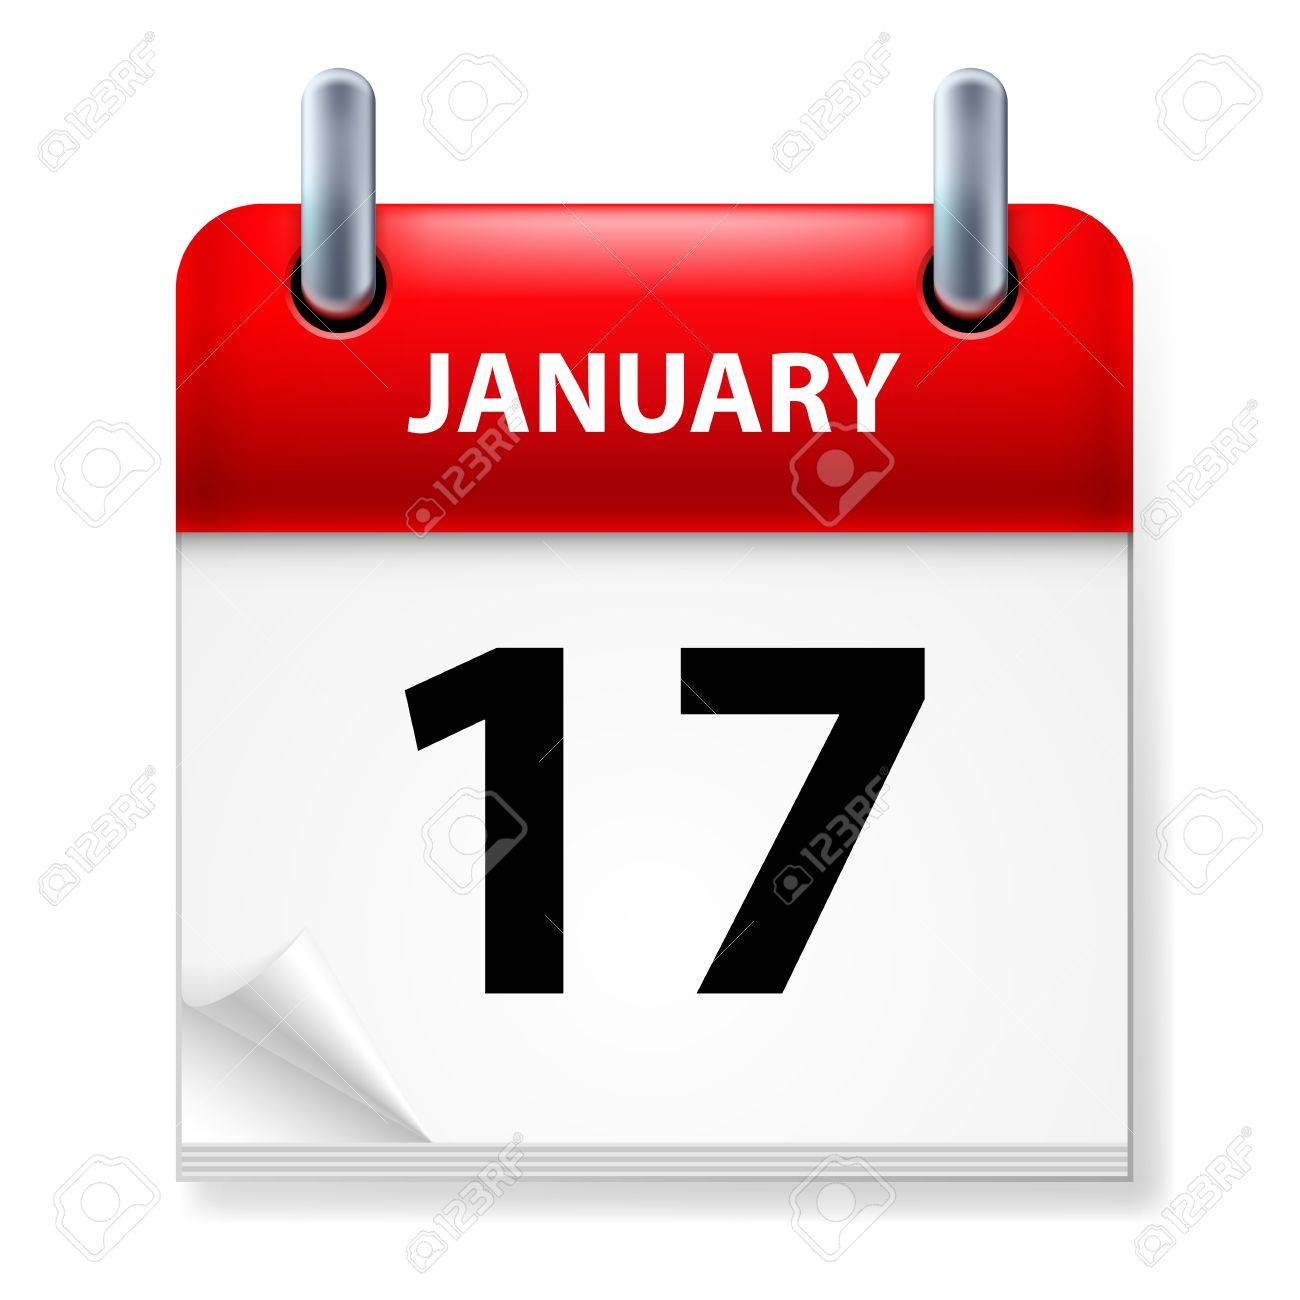 Seventeenth January in Calendar icon on white background Stock Vector - 14495278